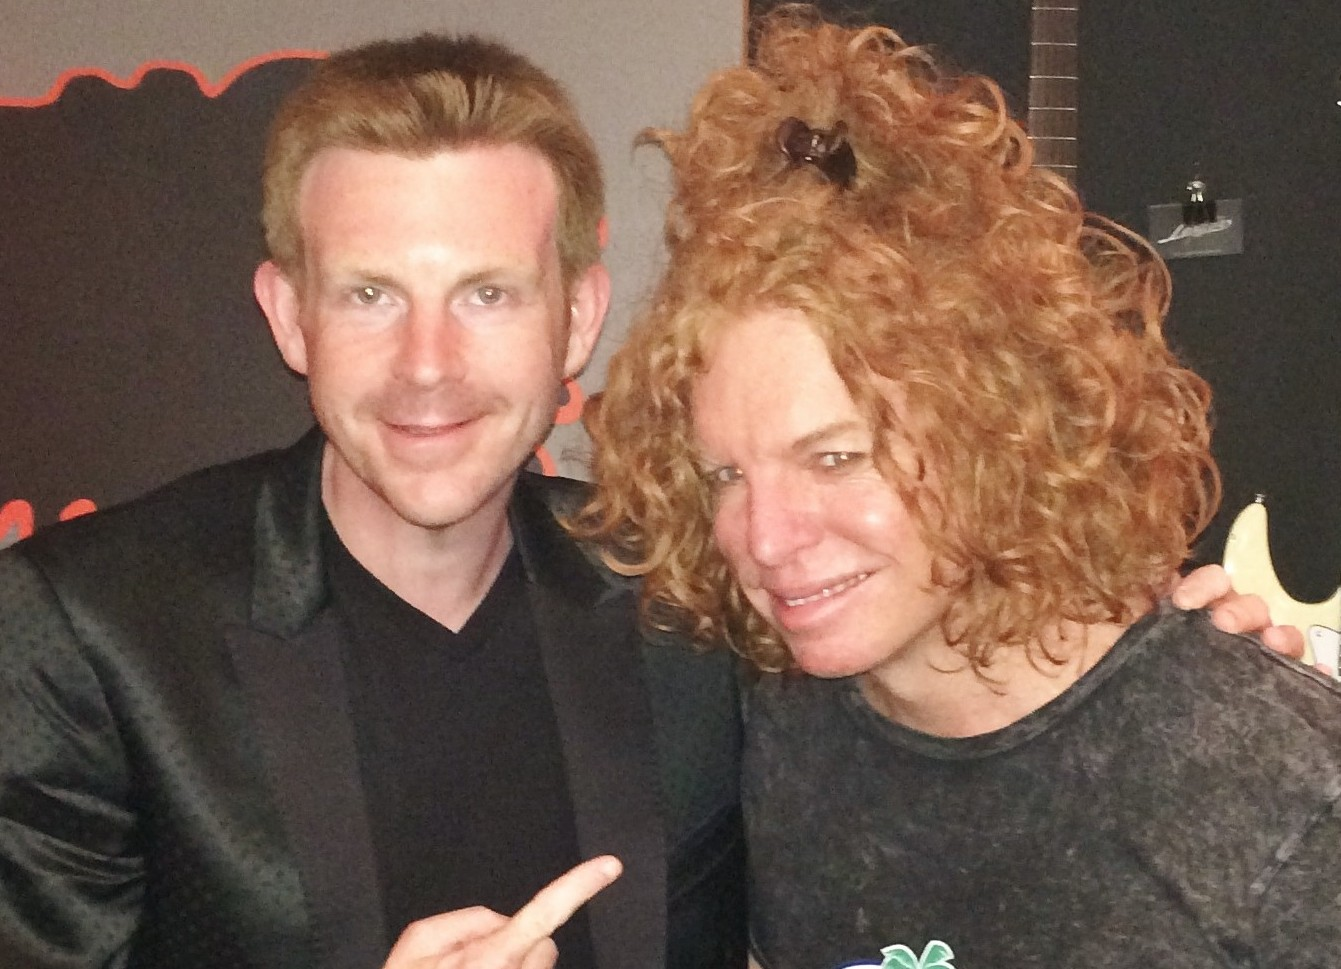 Enjoy Celebrity Radio's Carrot Top Luxor Casino Las Vegas Life Story Interview… Carrot Top is one of the most successful comedians of his generation. He's […]